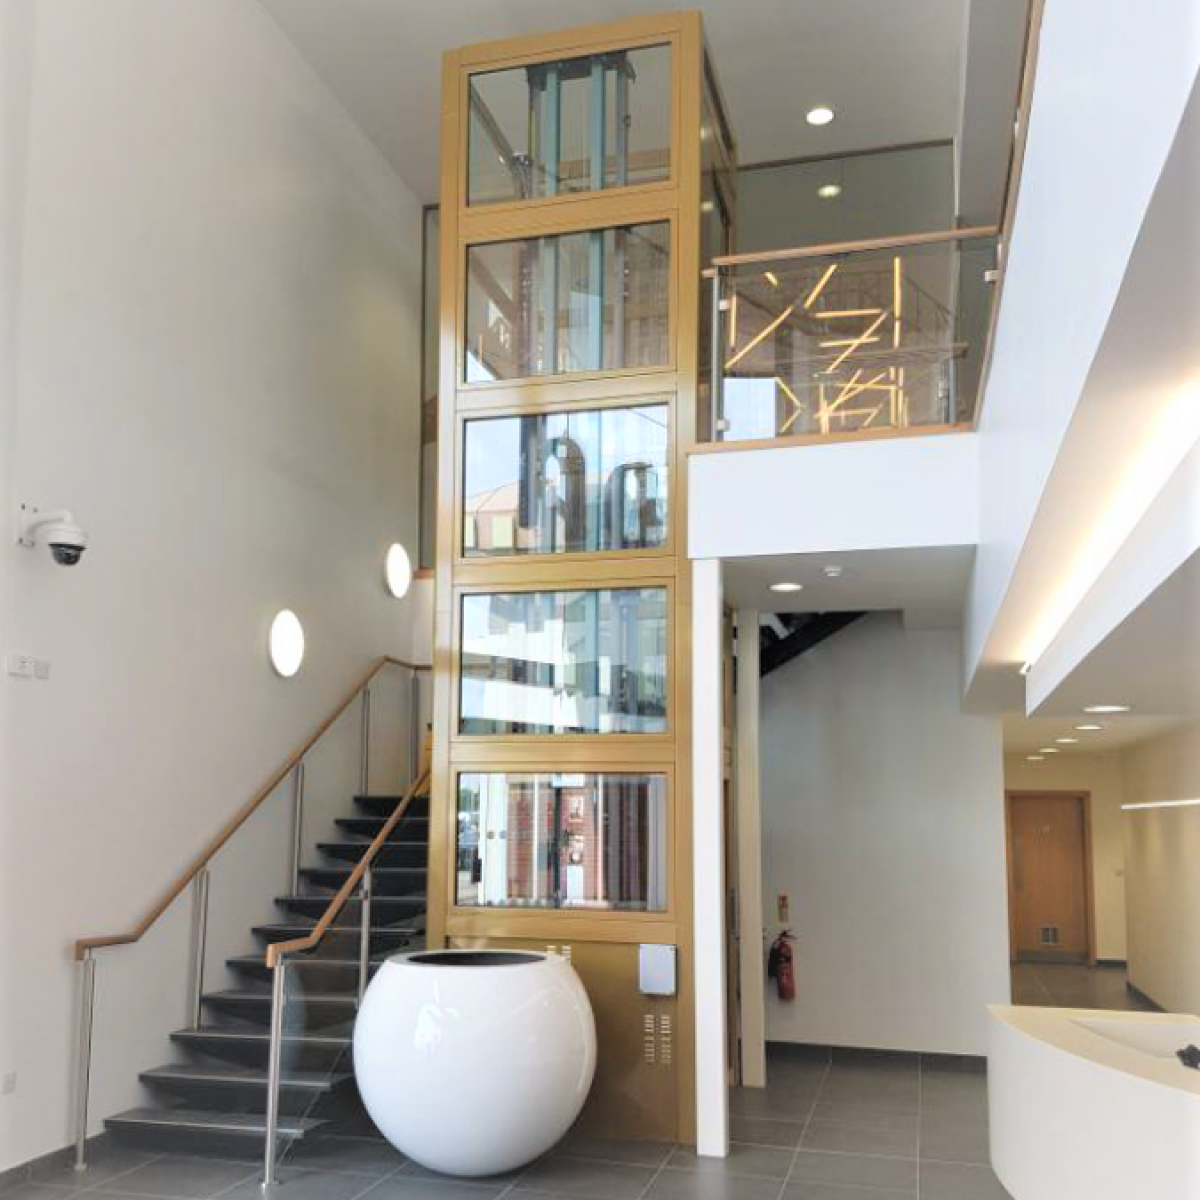 Easy Move Passenger Lift in home Easy Move Passenger Lift | Simplex Elevators Gallery Image 2